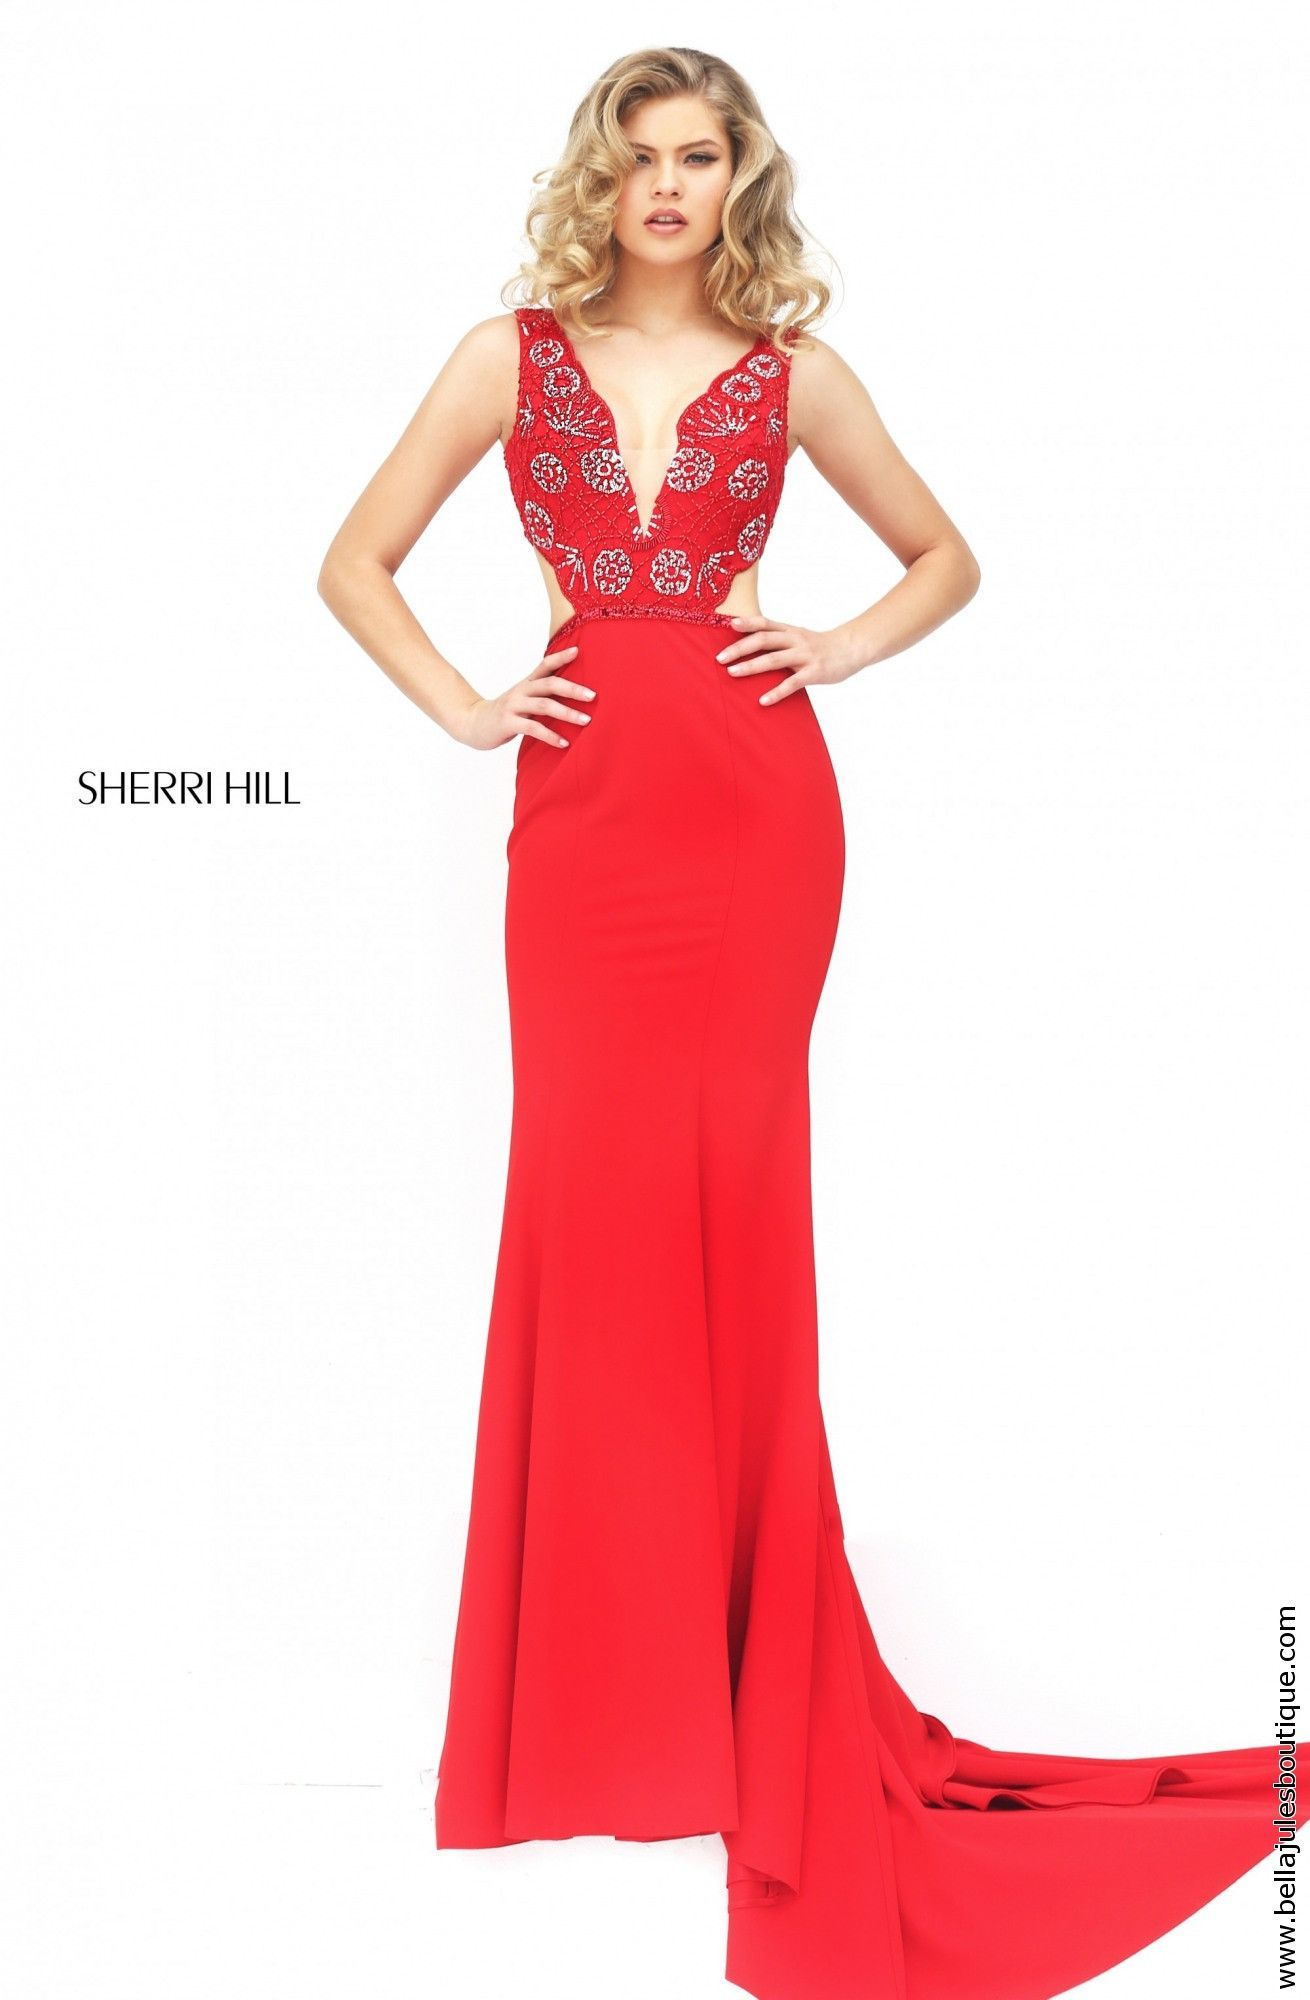 Sherri hill prom dress style diyus to try to do